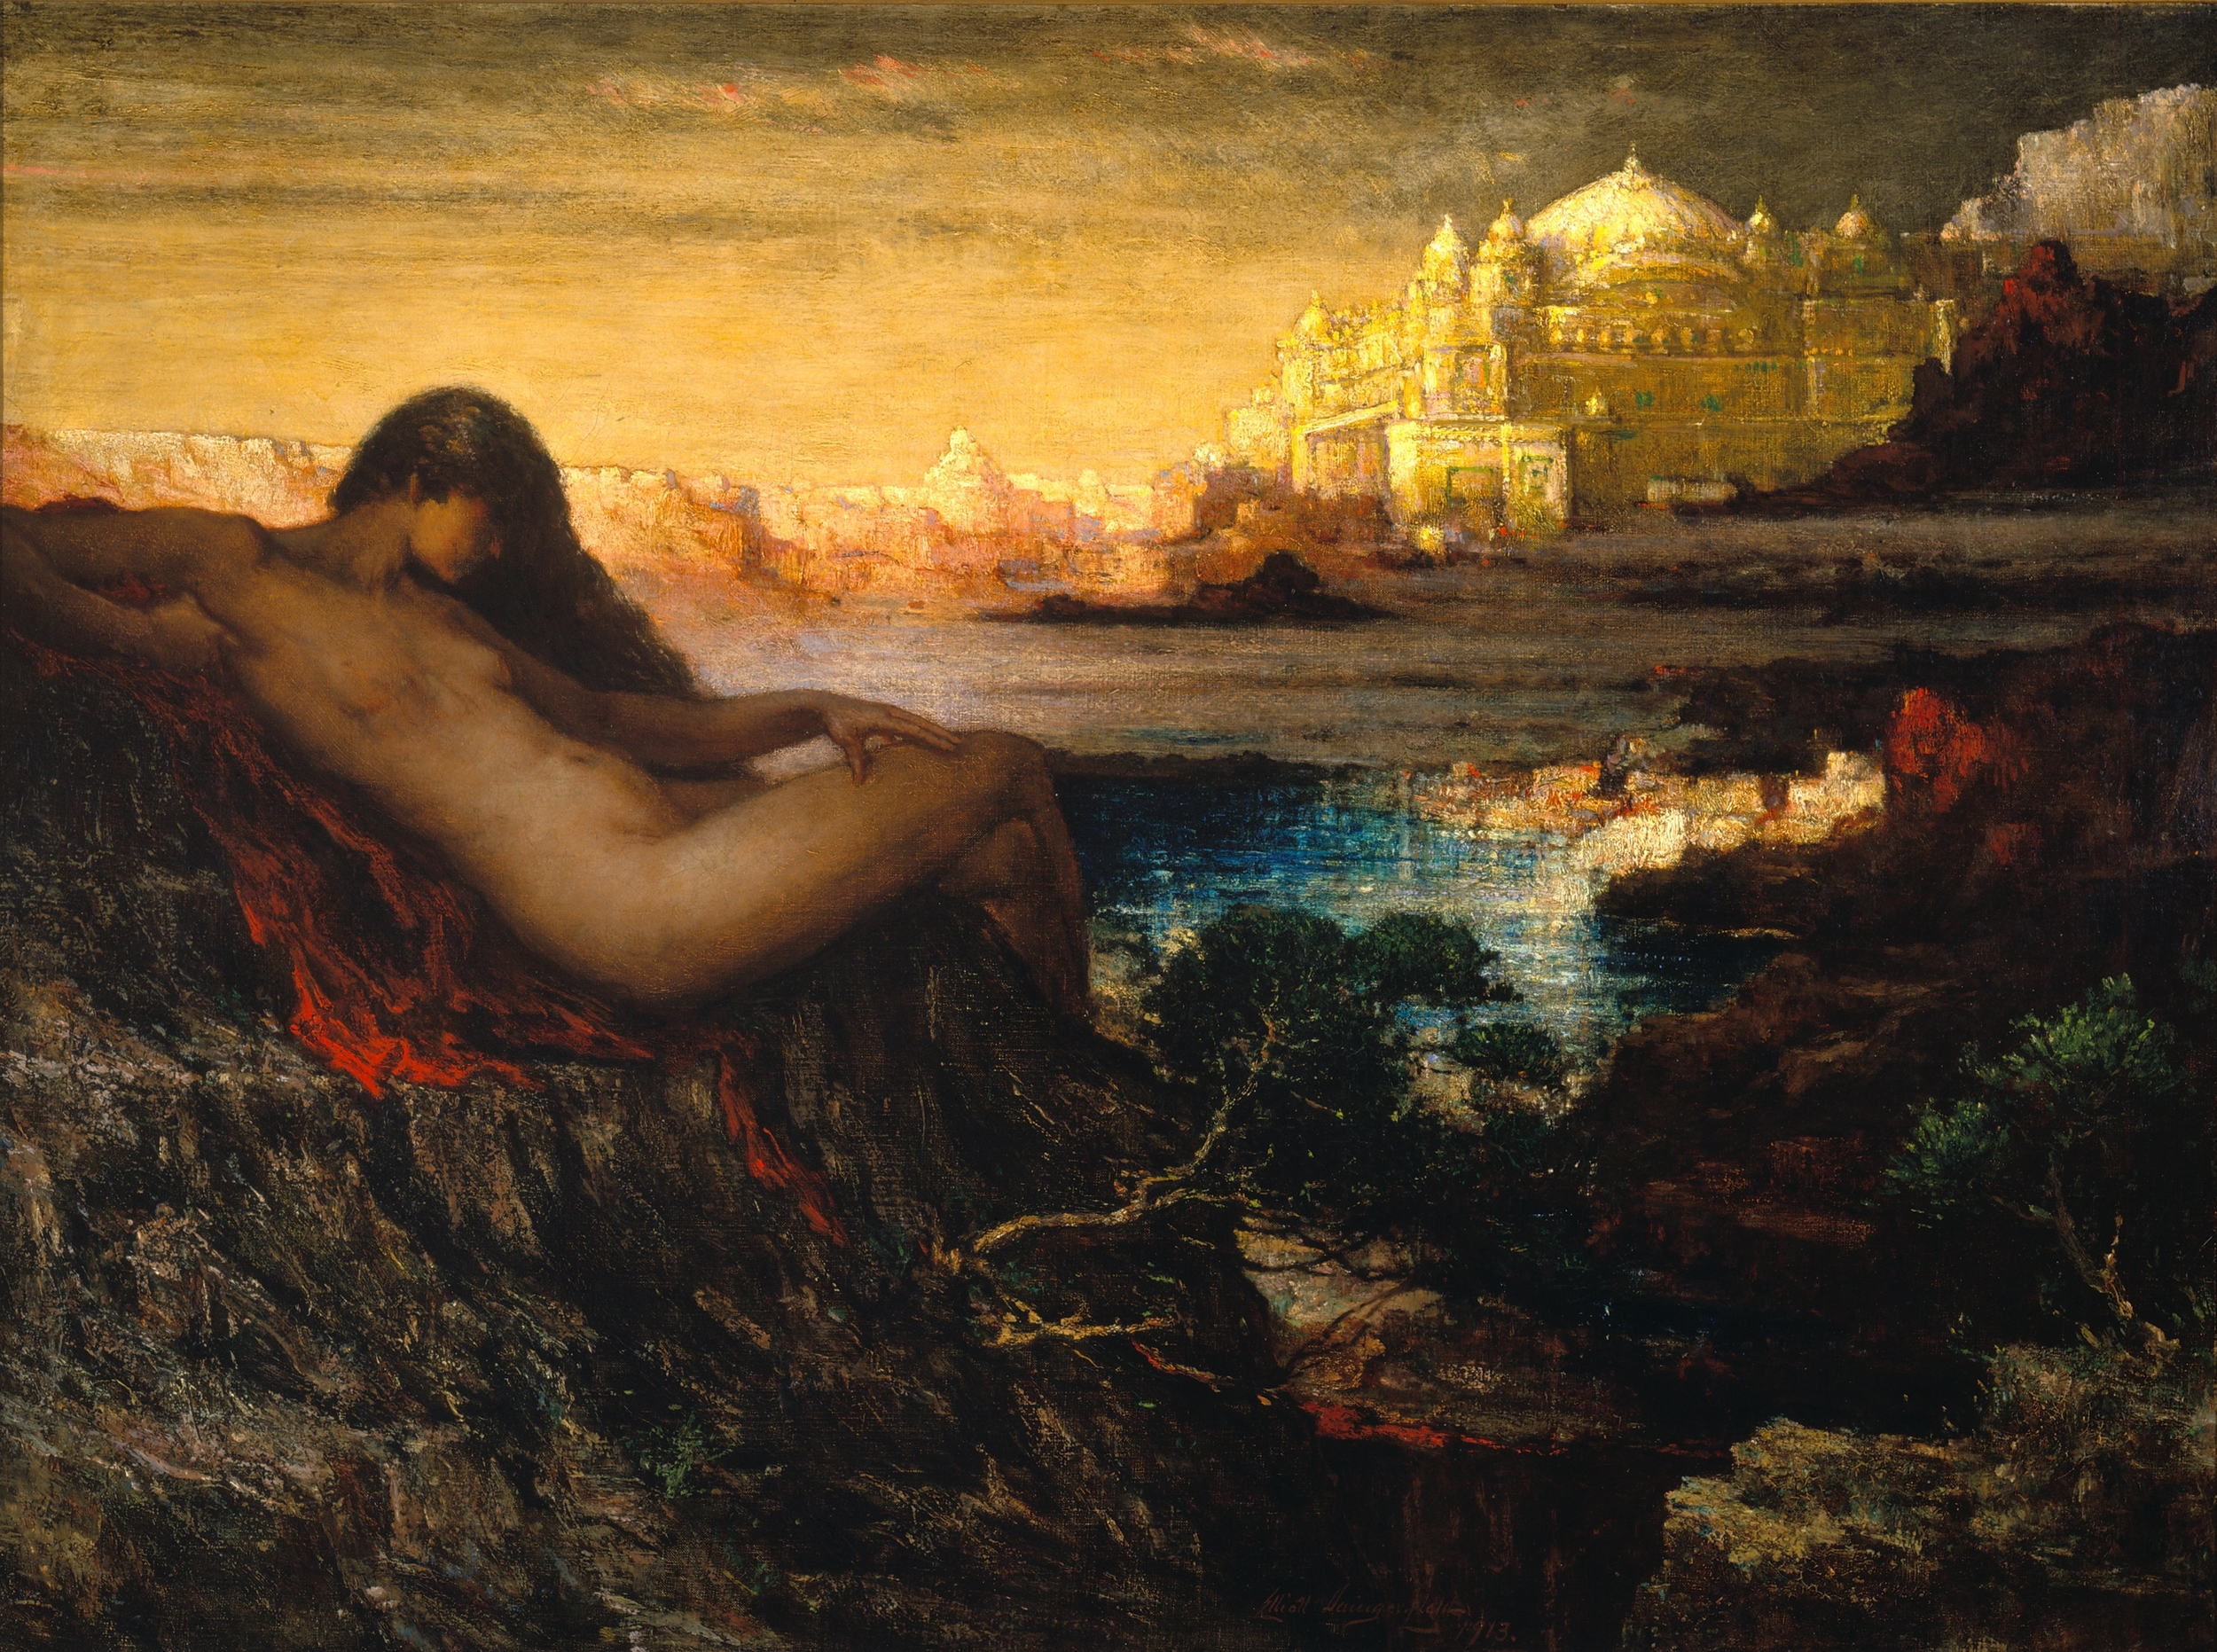 A naked woman on a dark hillside with a golden castle in the background.